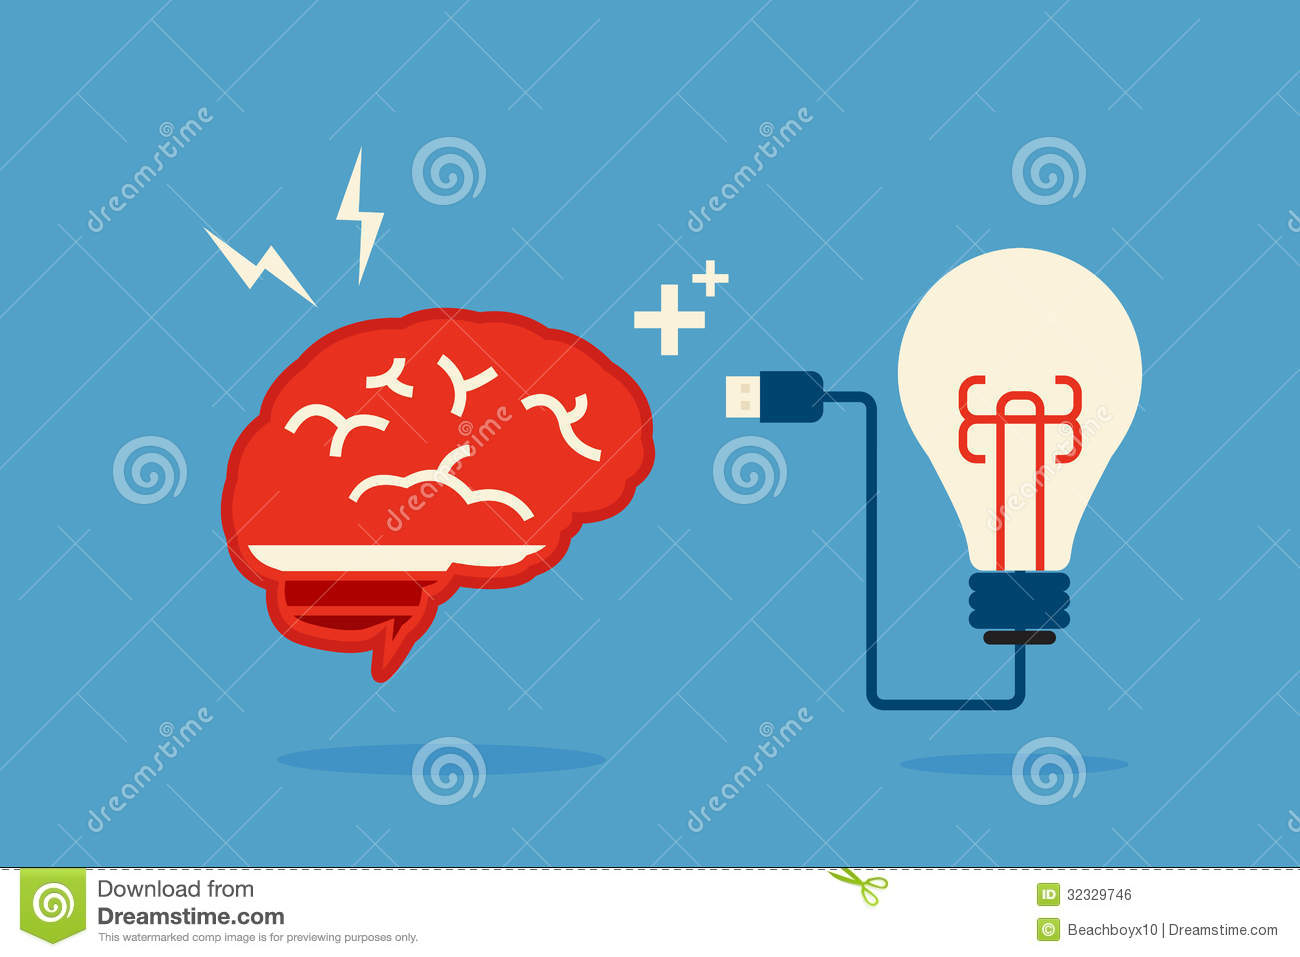 Idea Design flat design colorful vector illustration concept for creativity big idea creative work starting new project Brain And Bulb Idea Royalty Free Stock Image Idea Design